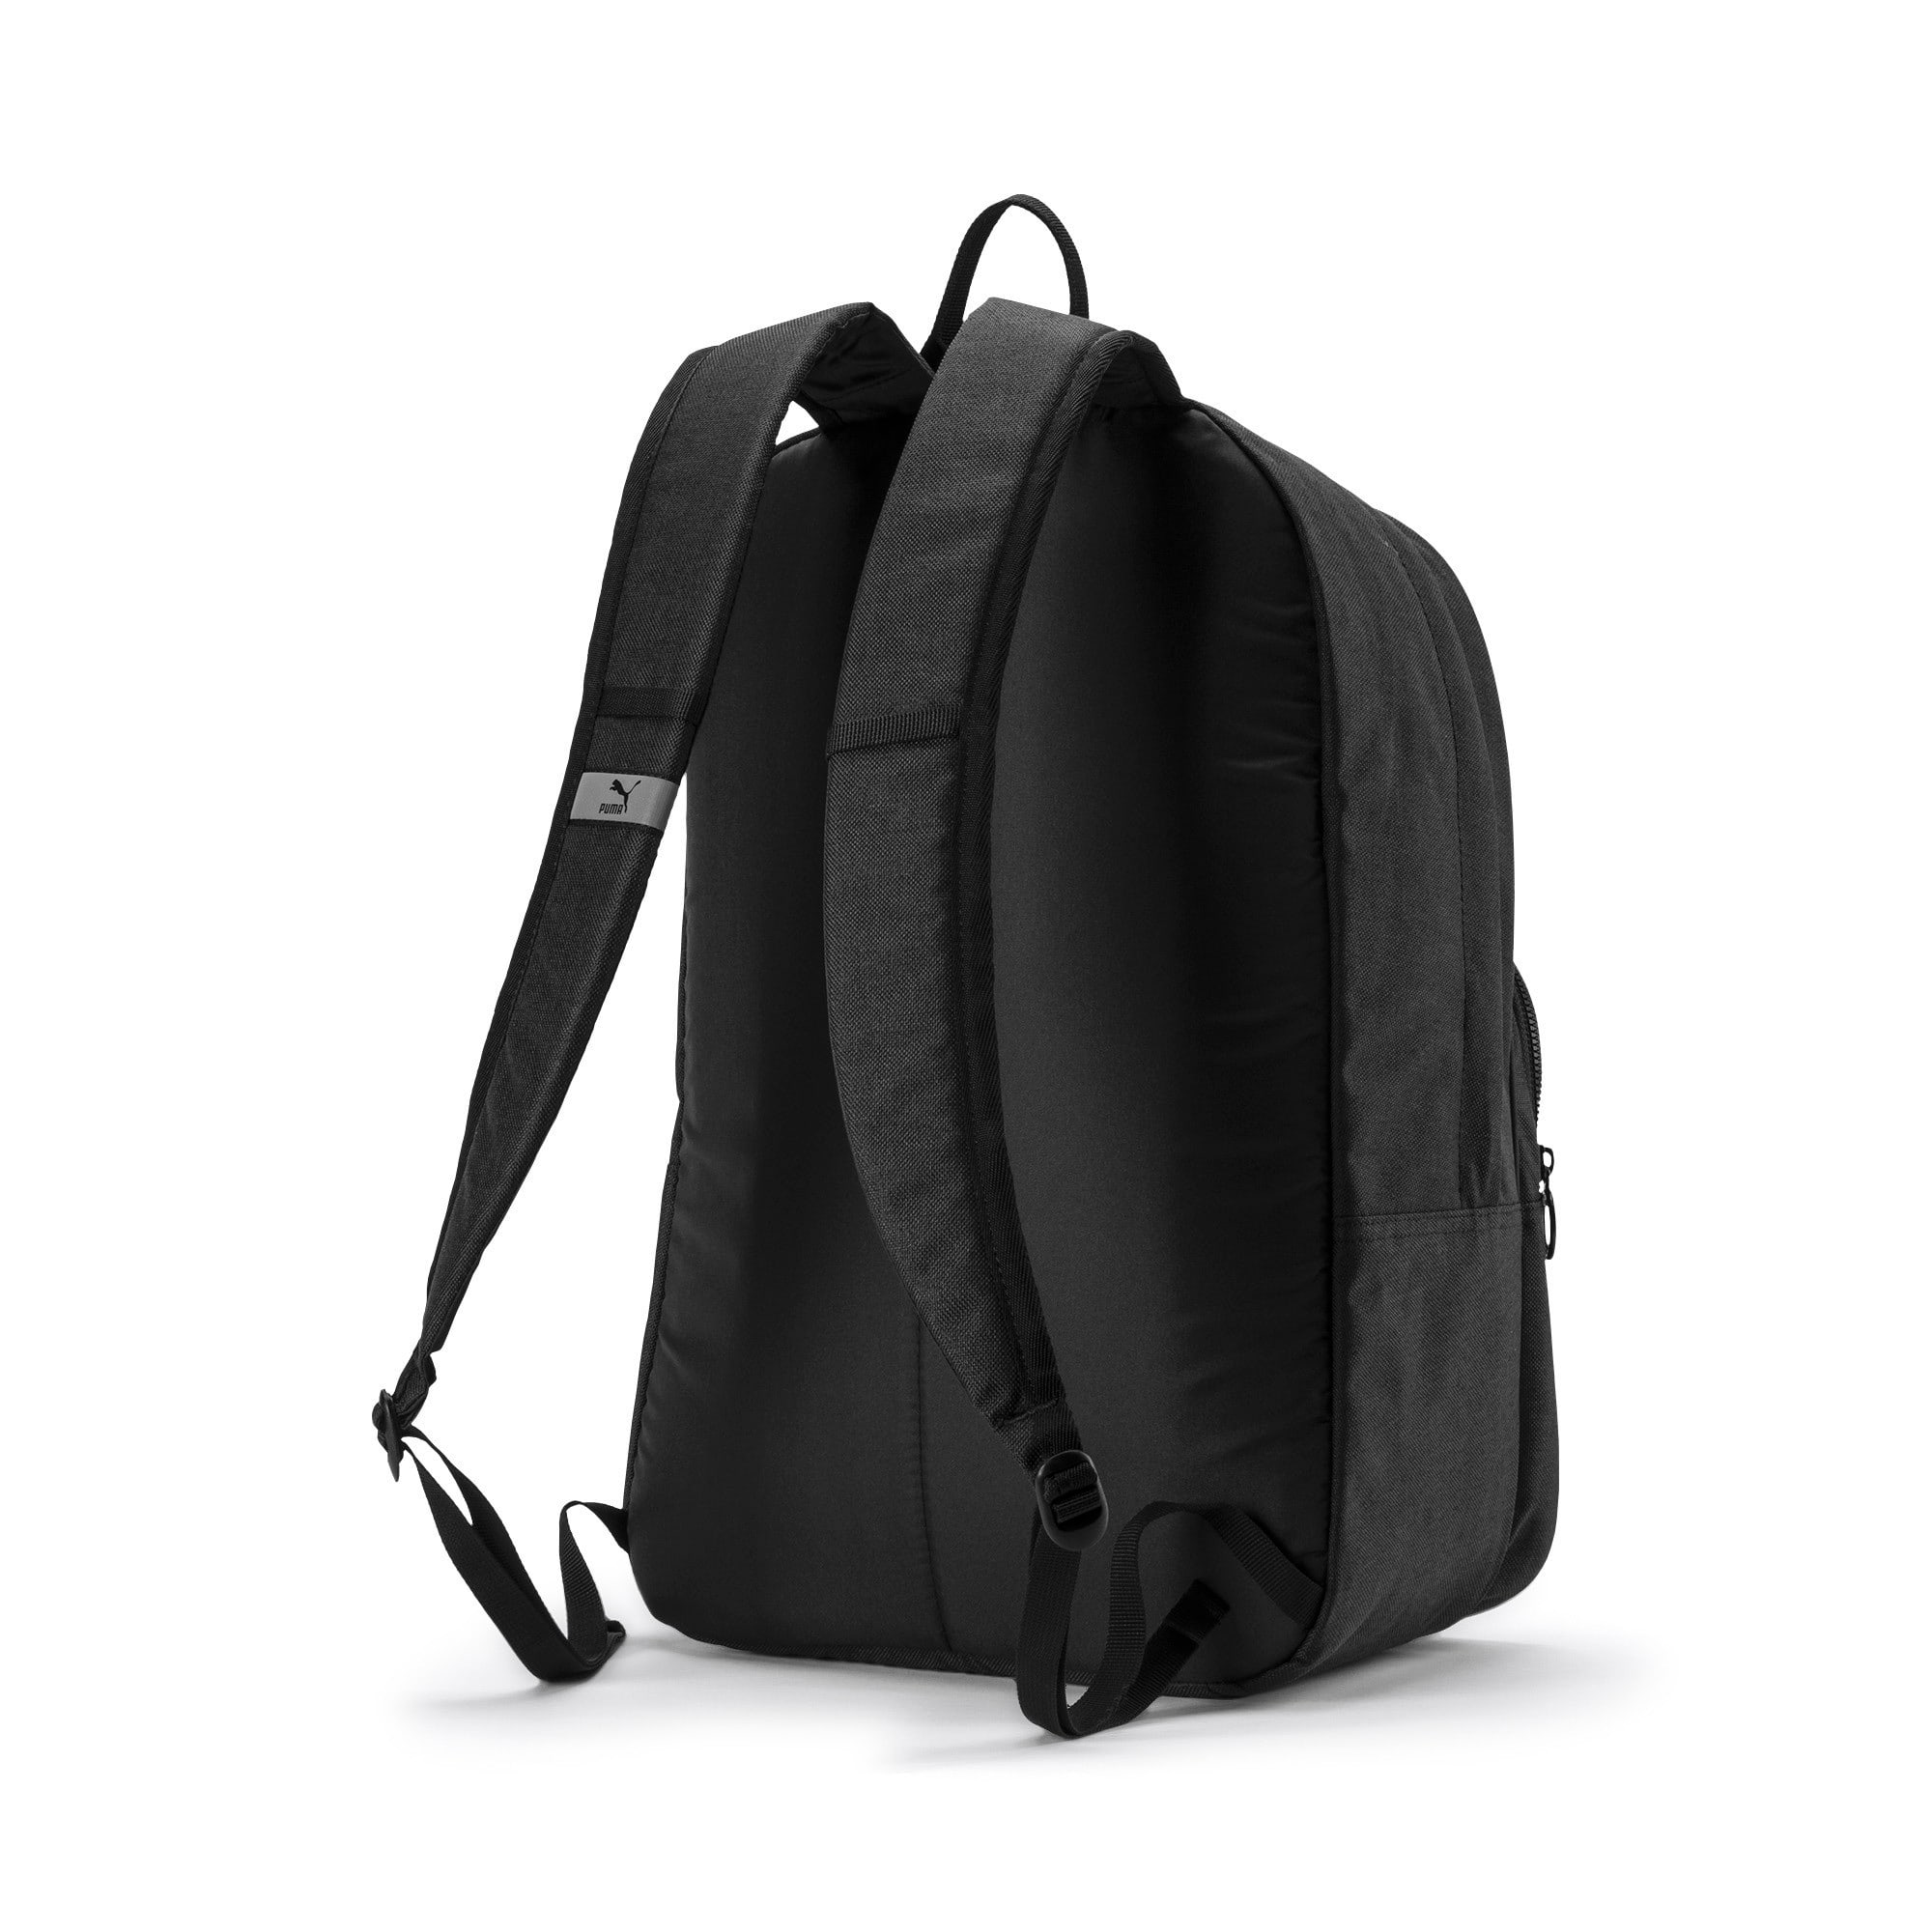 Thumbnail 3 of Originals Retro Woven Backpack, Puma Black, medium